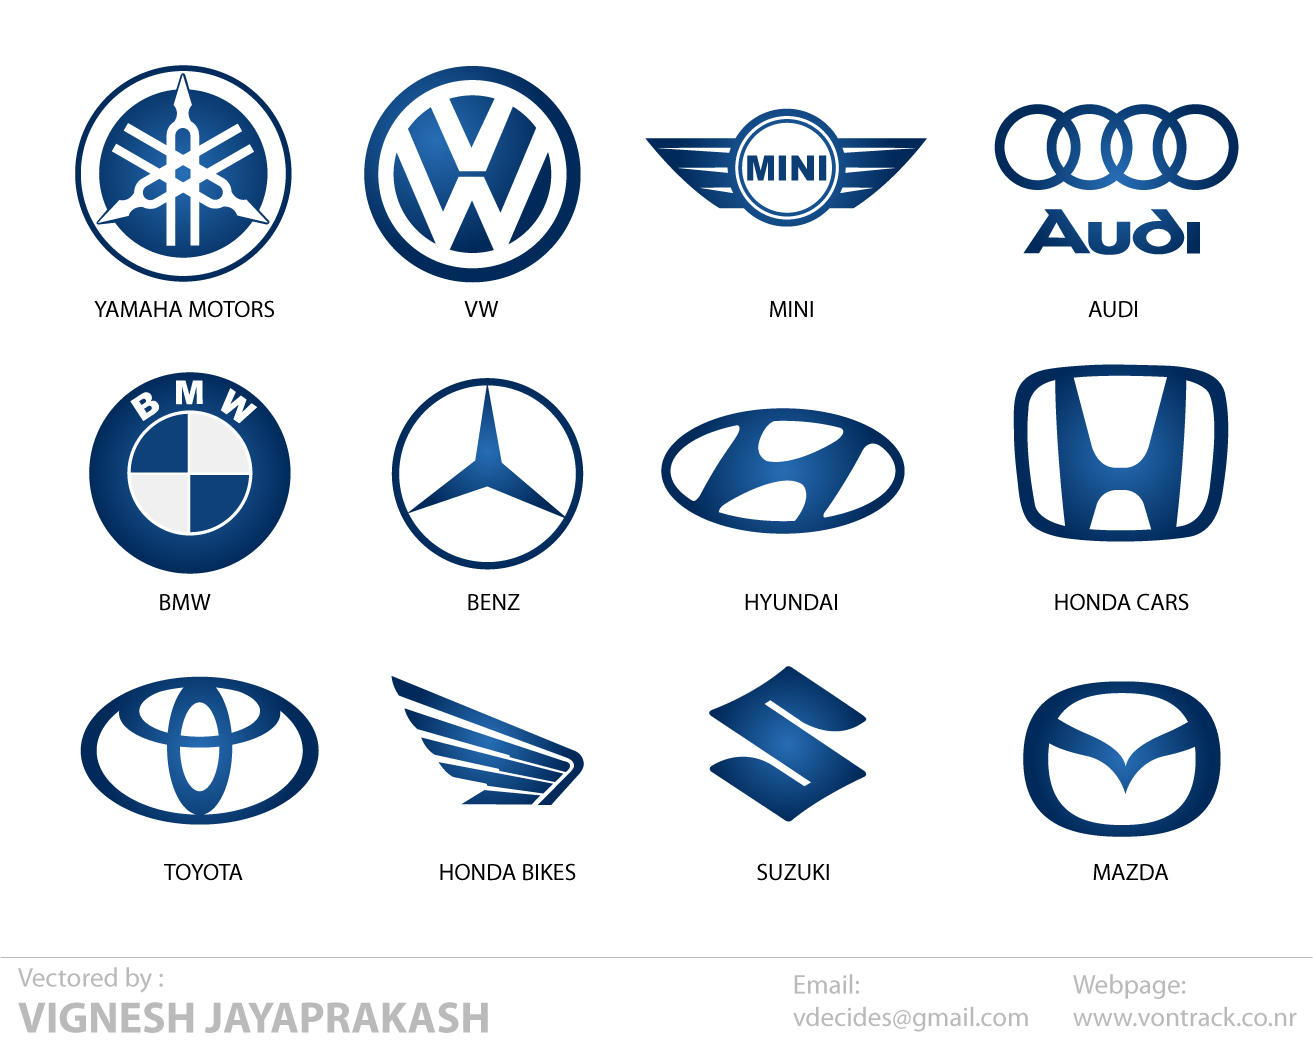 Automotive_Logos_by_vdecides.jpg